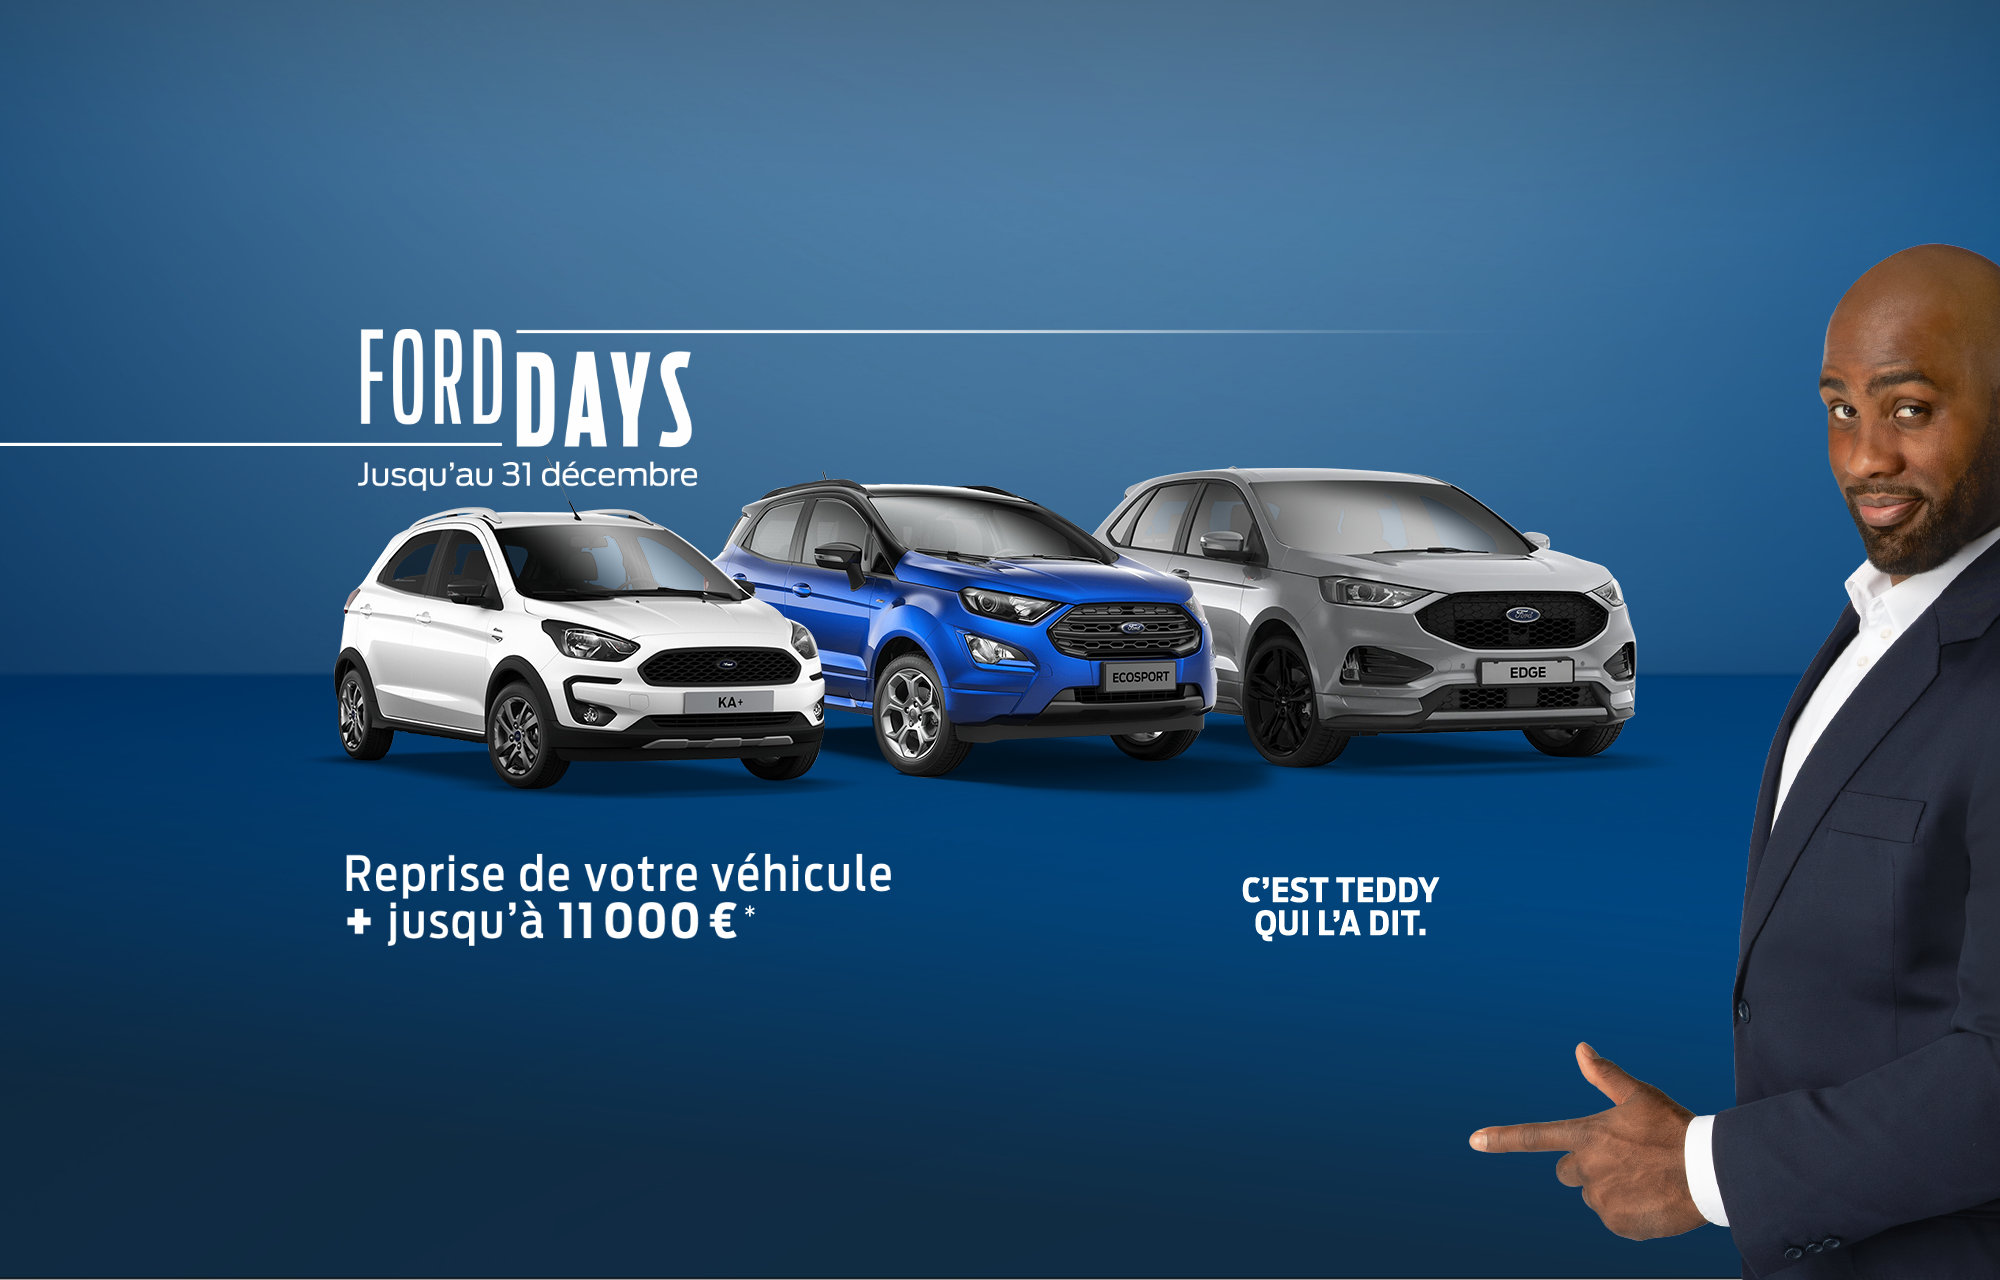 Ford days reprise 11 000€